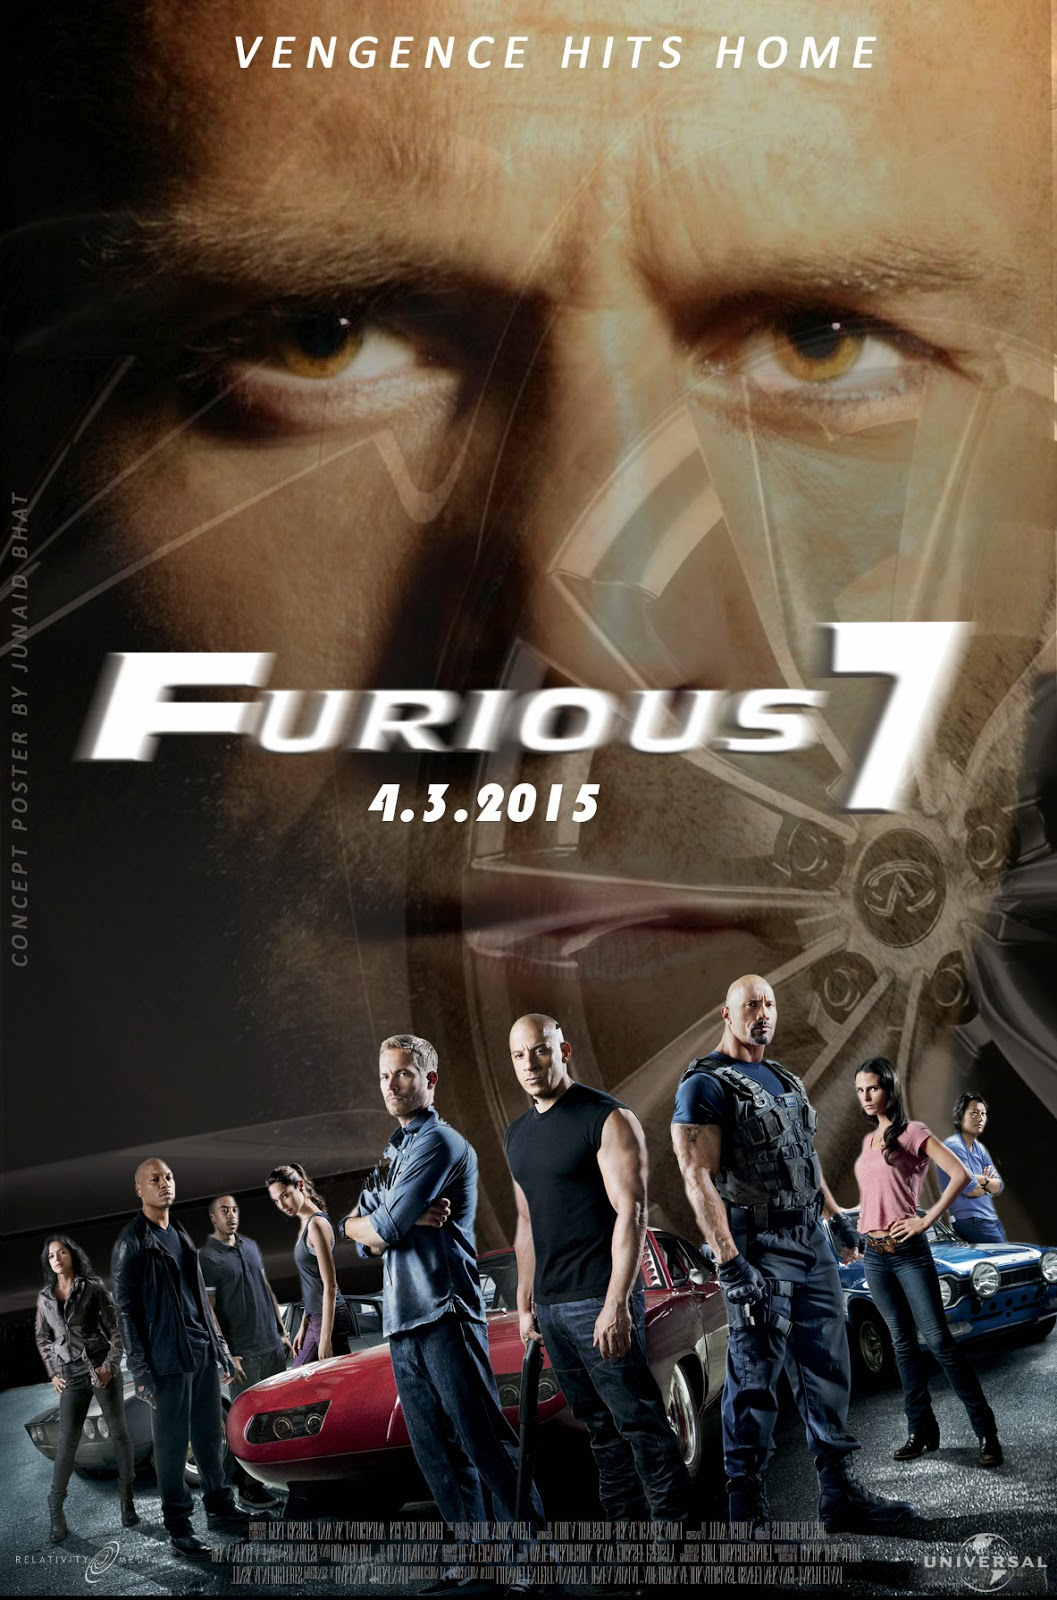 Fast and furious 7 hindi dubbed full hd movie free download livinace.